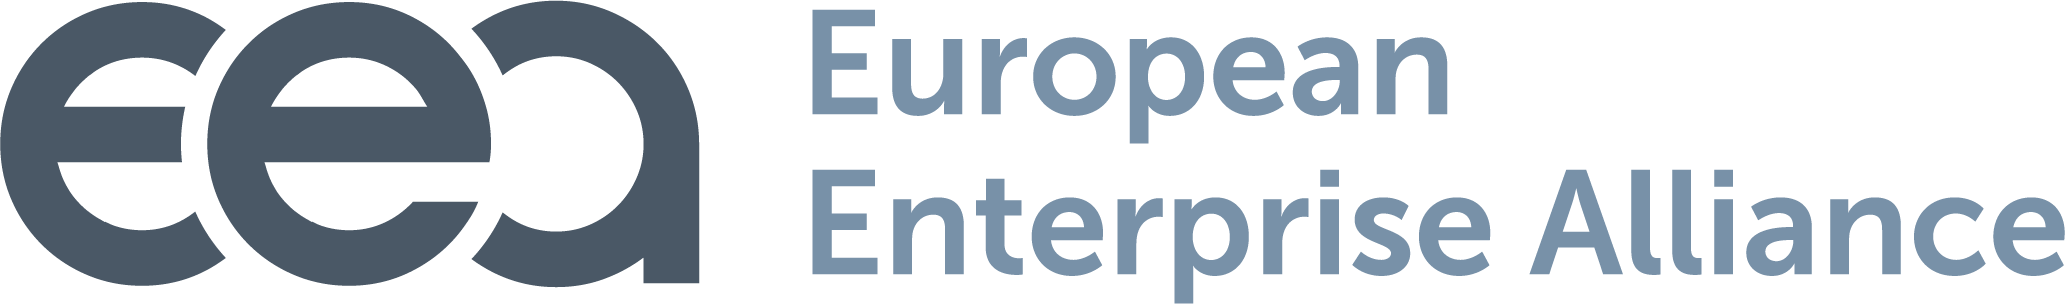 European Enterprise Alliance